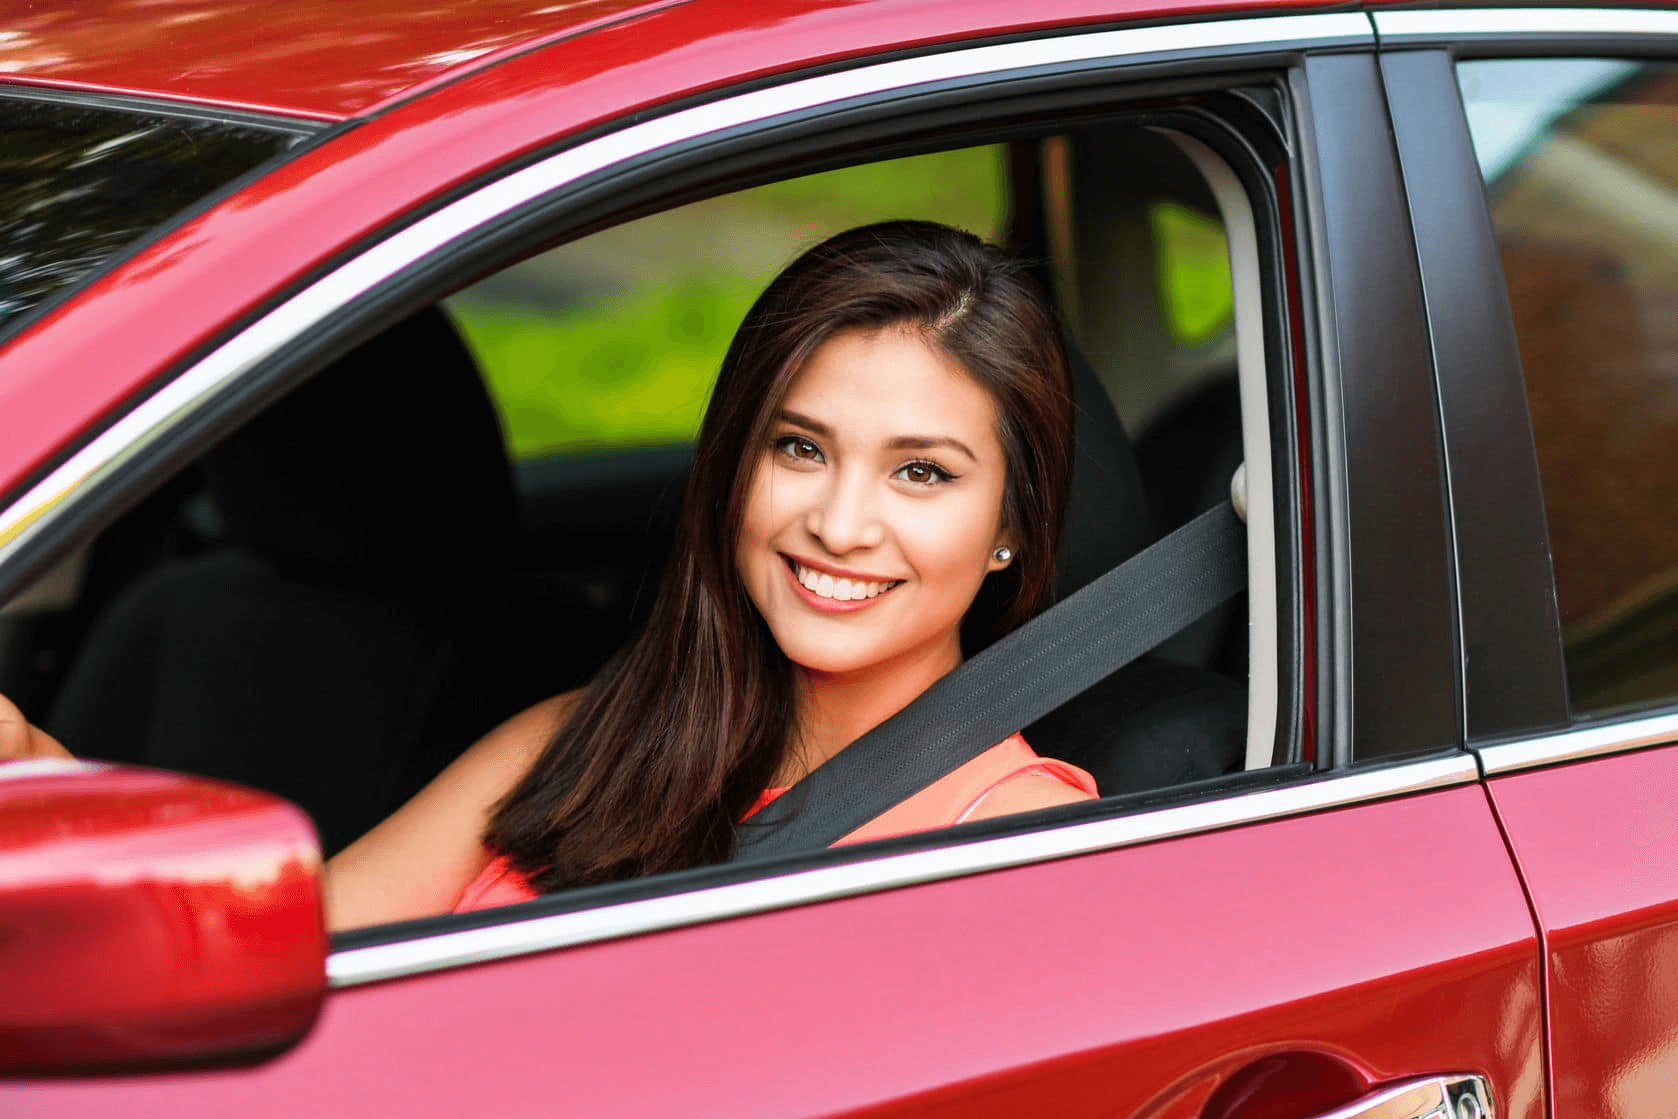 Auto Ins Brunette-Teen-in-Red-Car-1